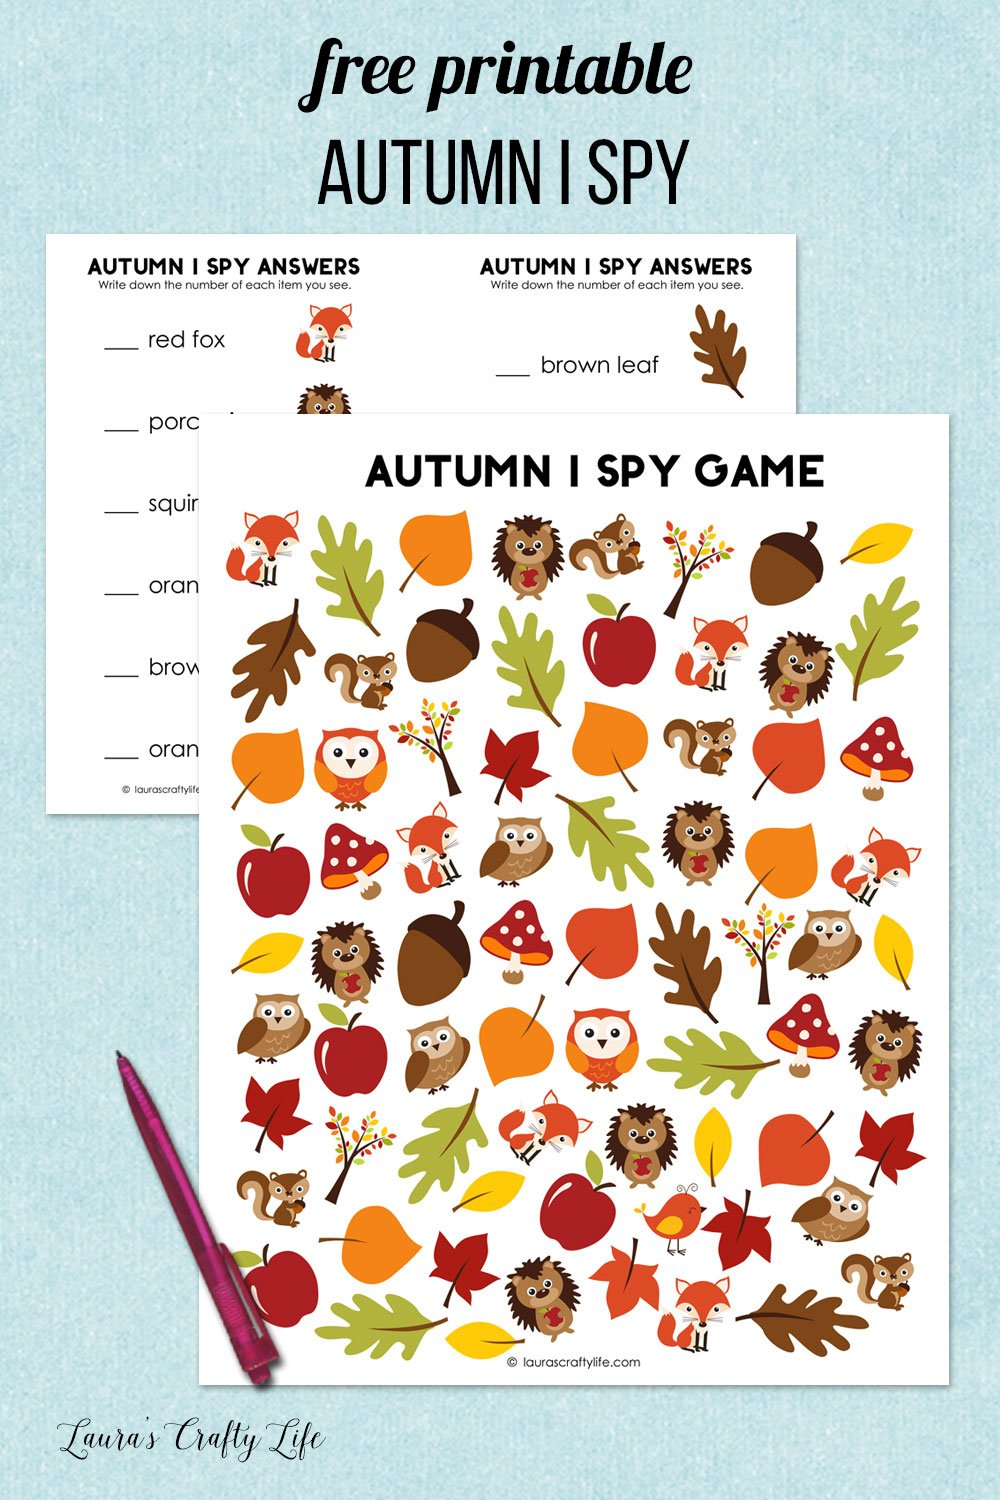 free printable autumn i spy